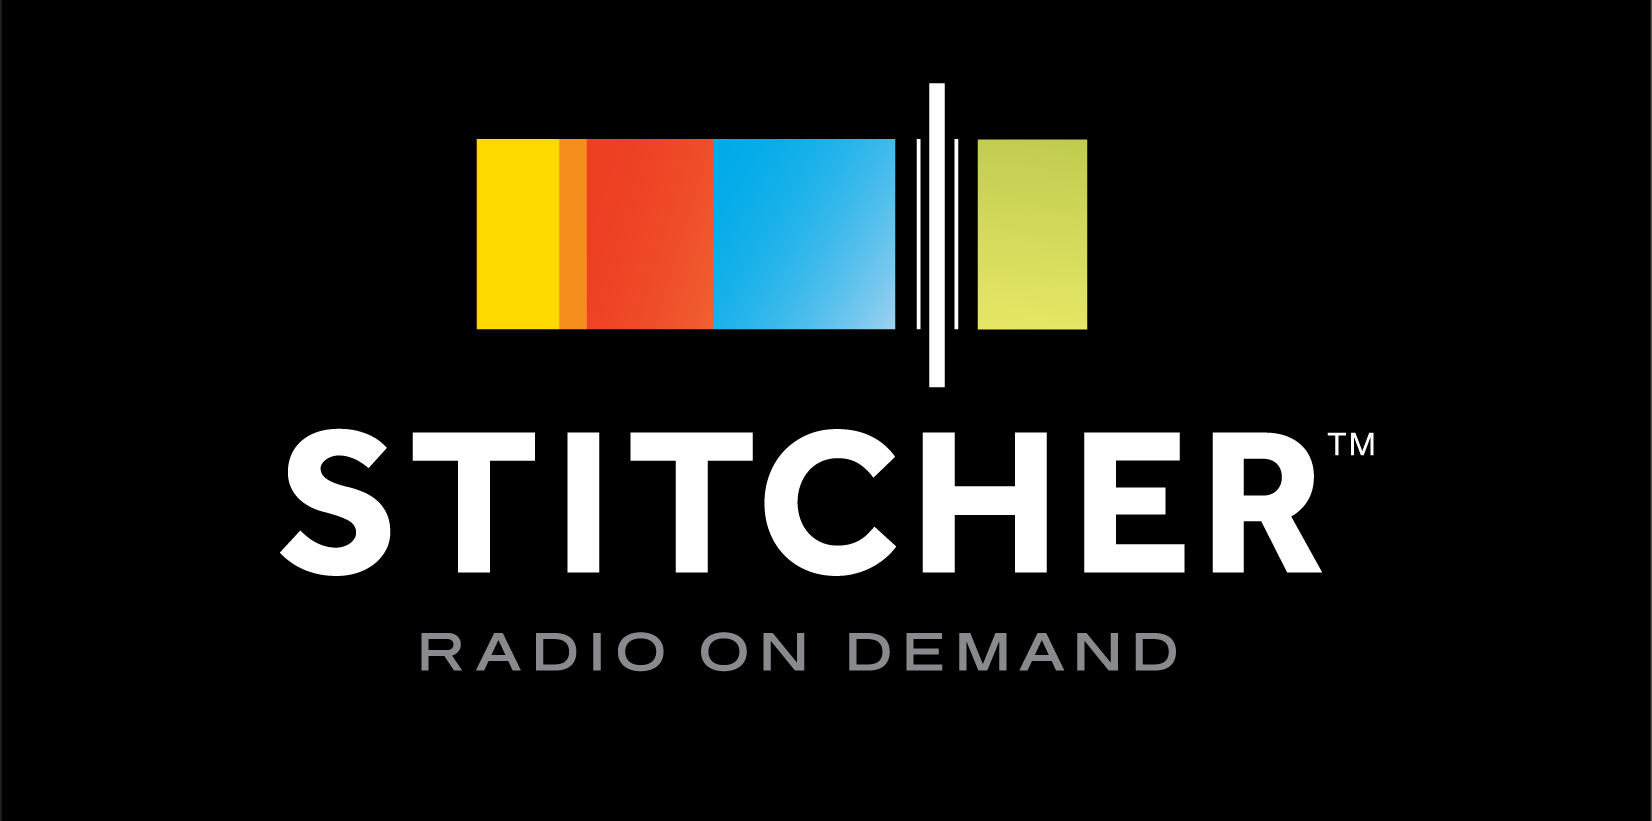 Click on the image to head straight to the Stitcher website.